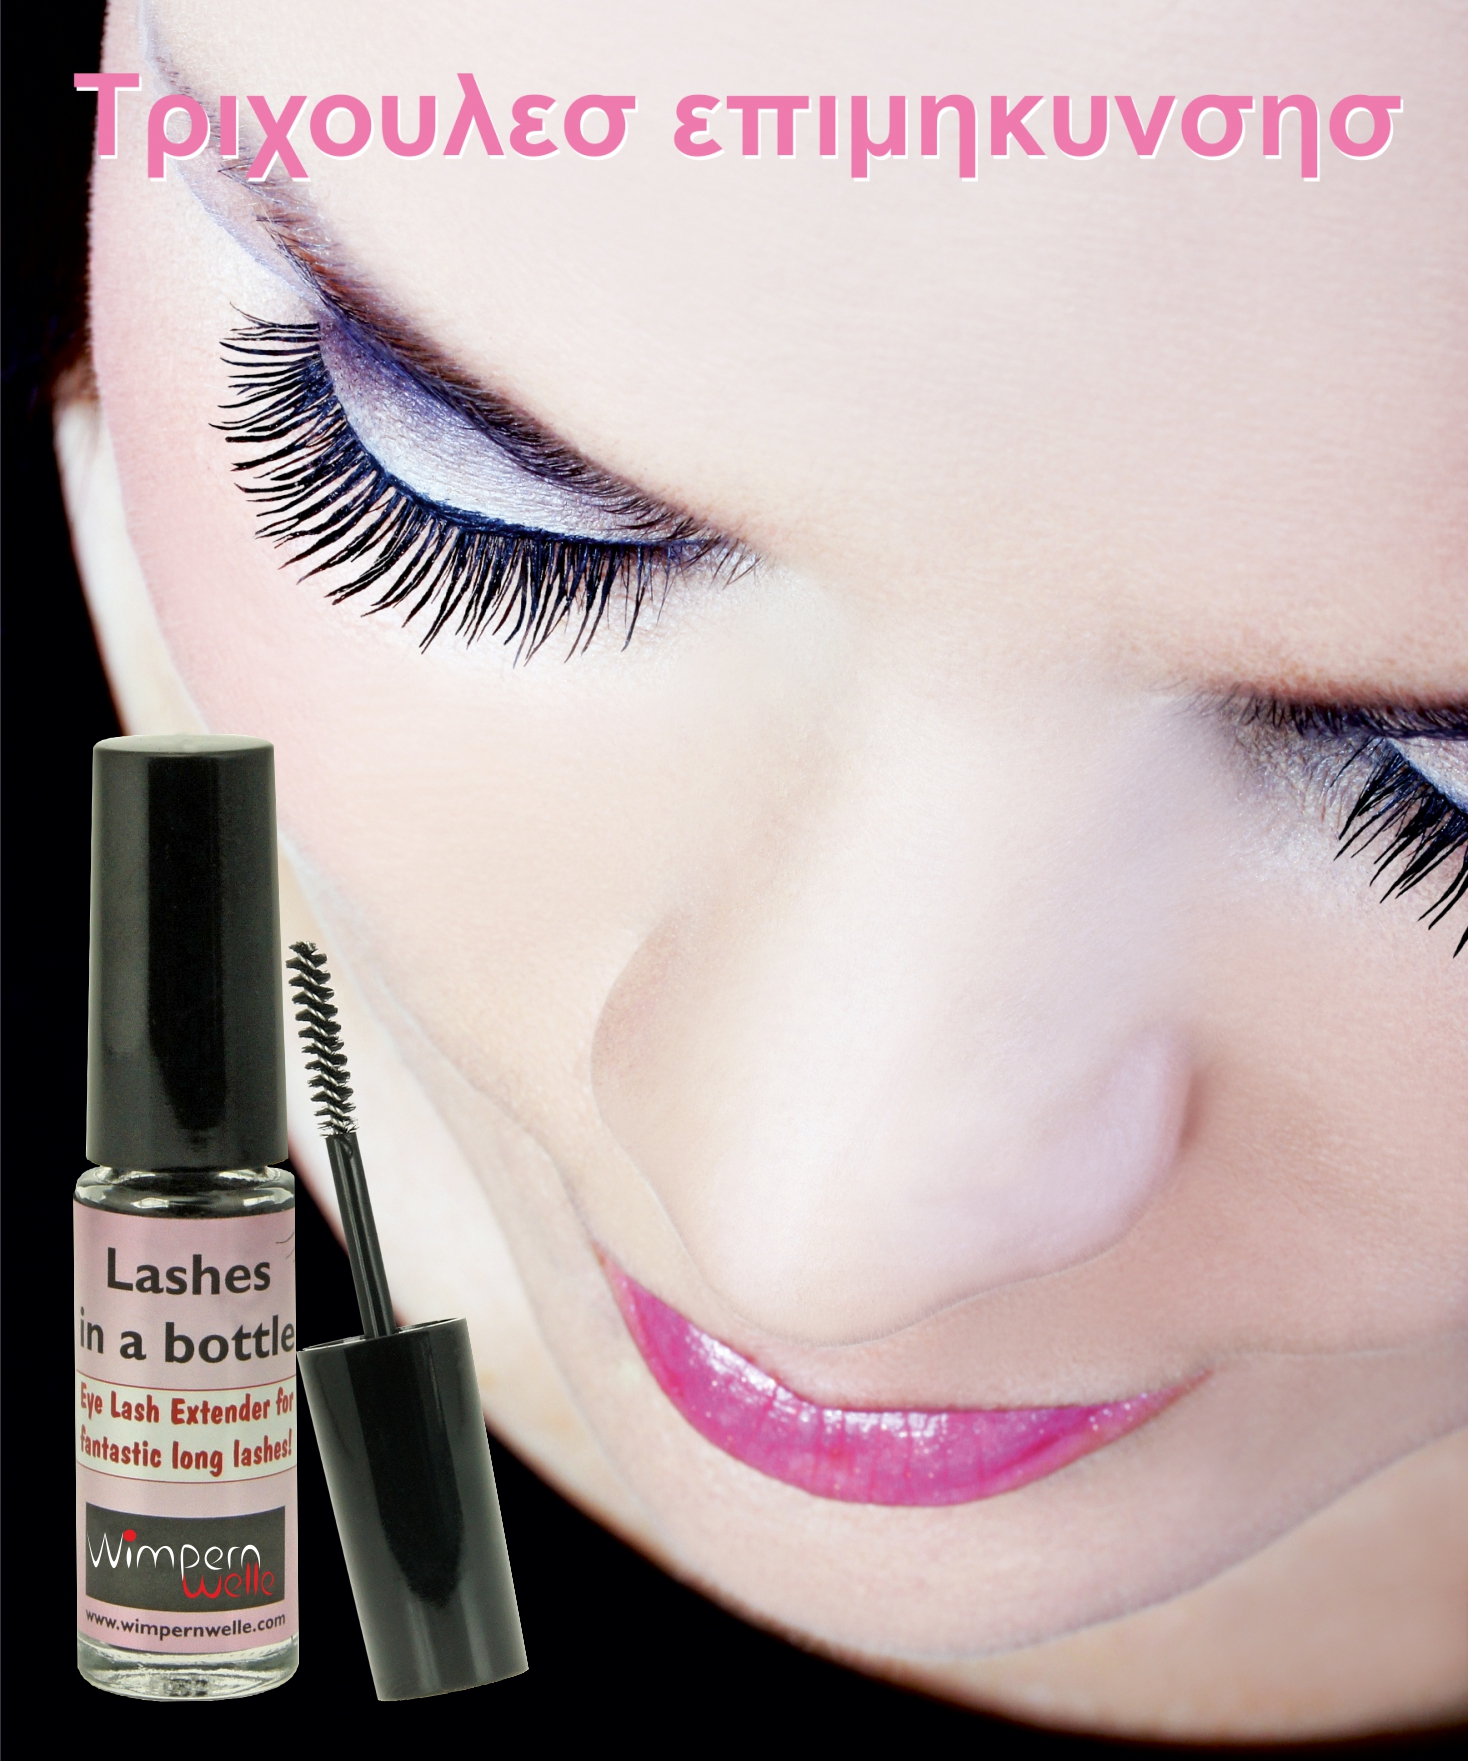 Lashes in a bottle